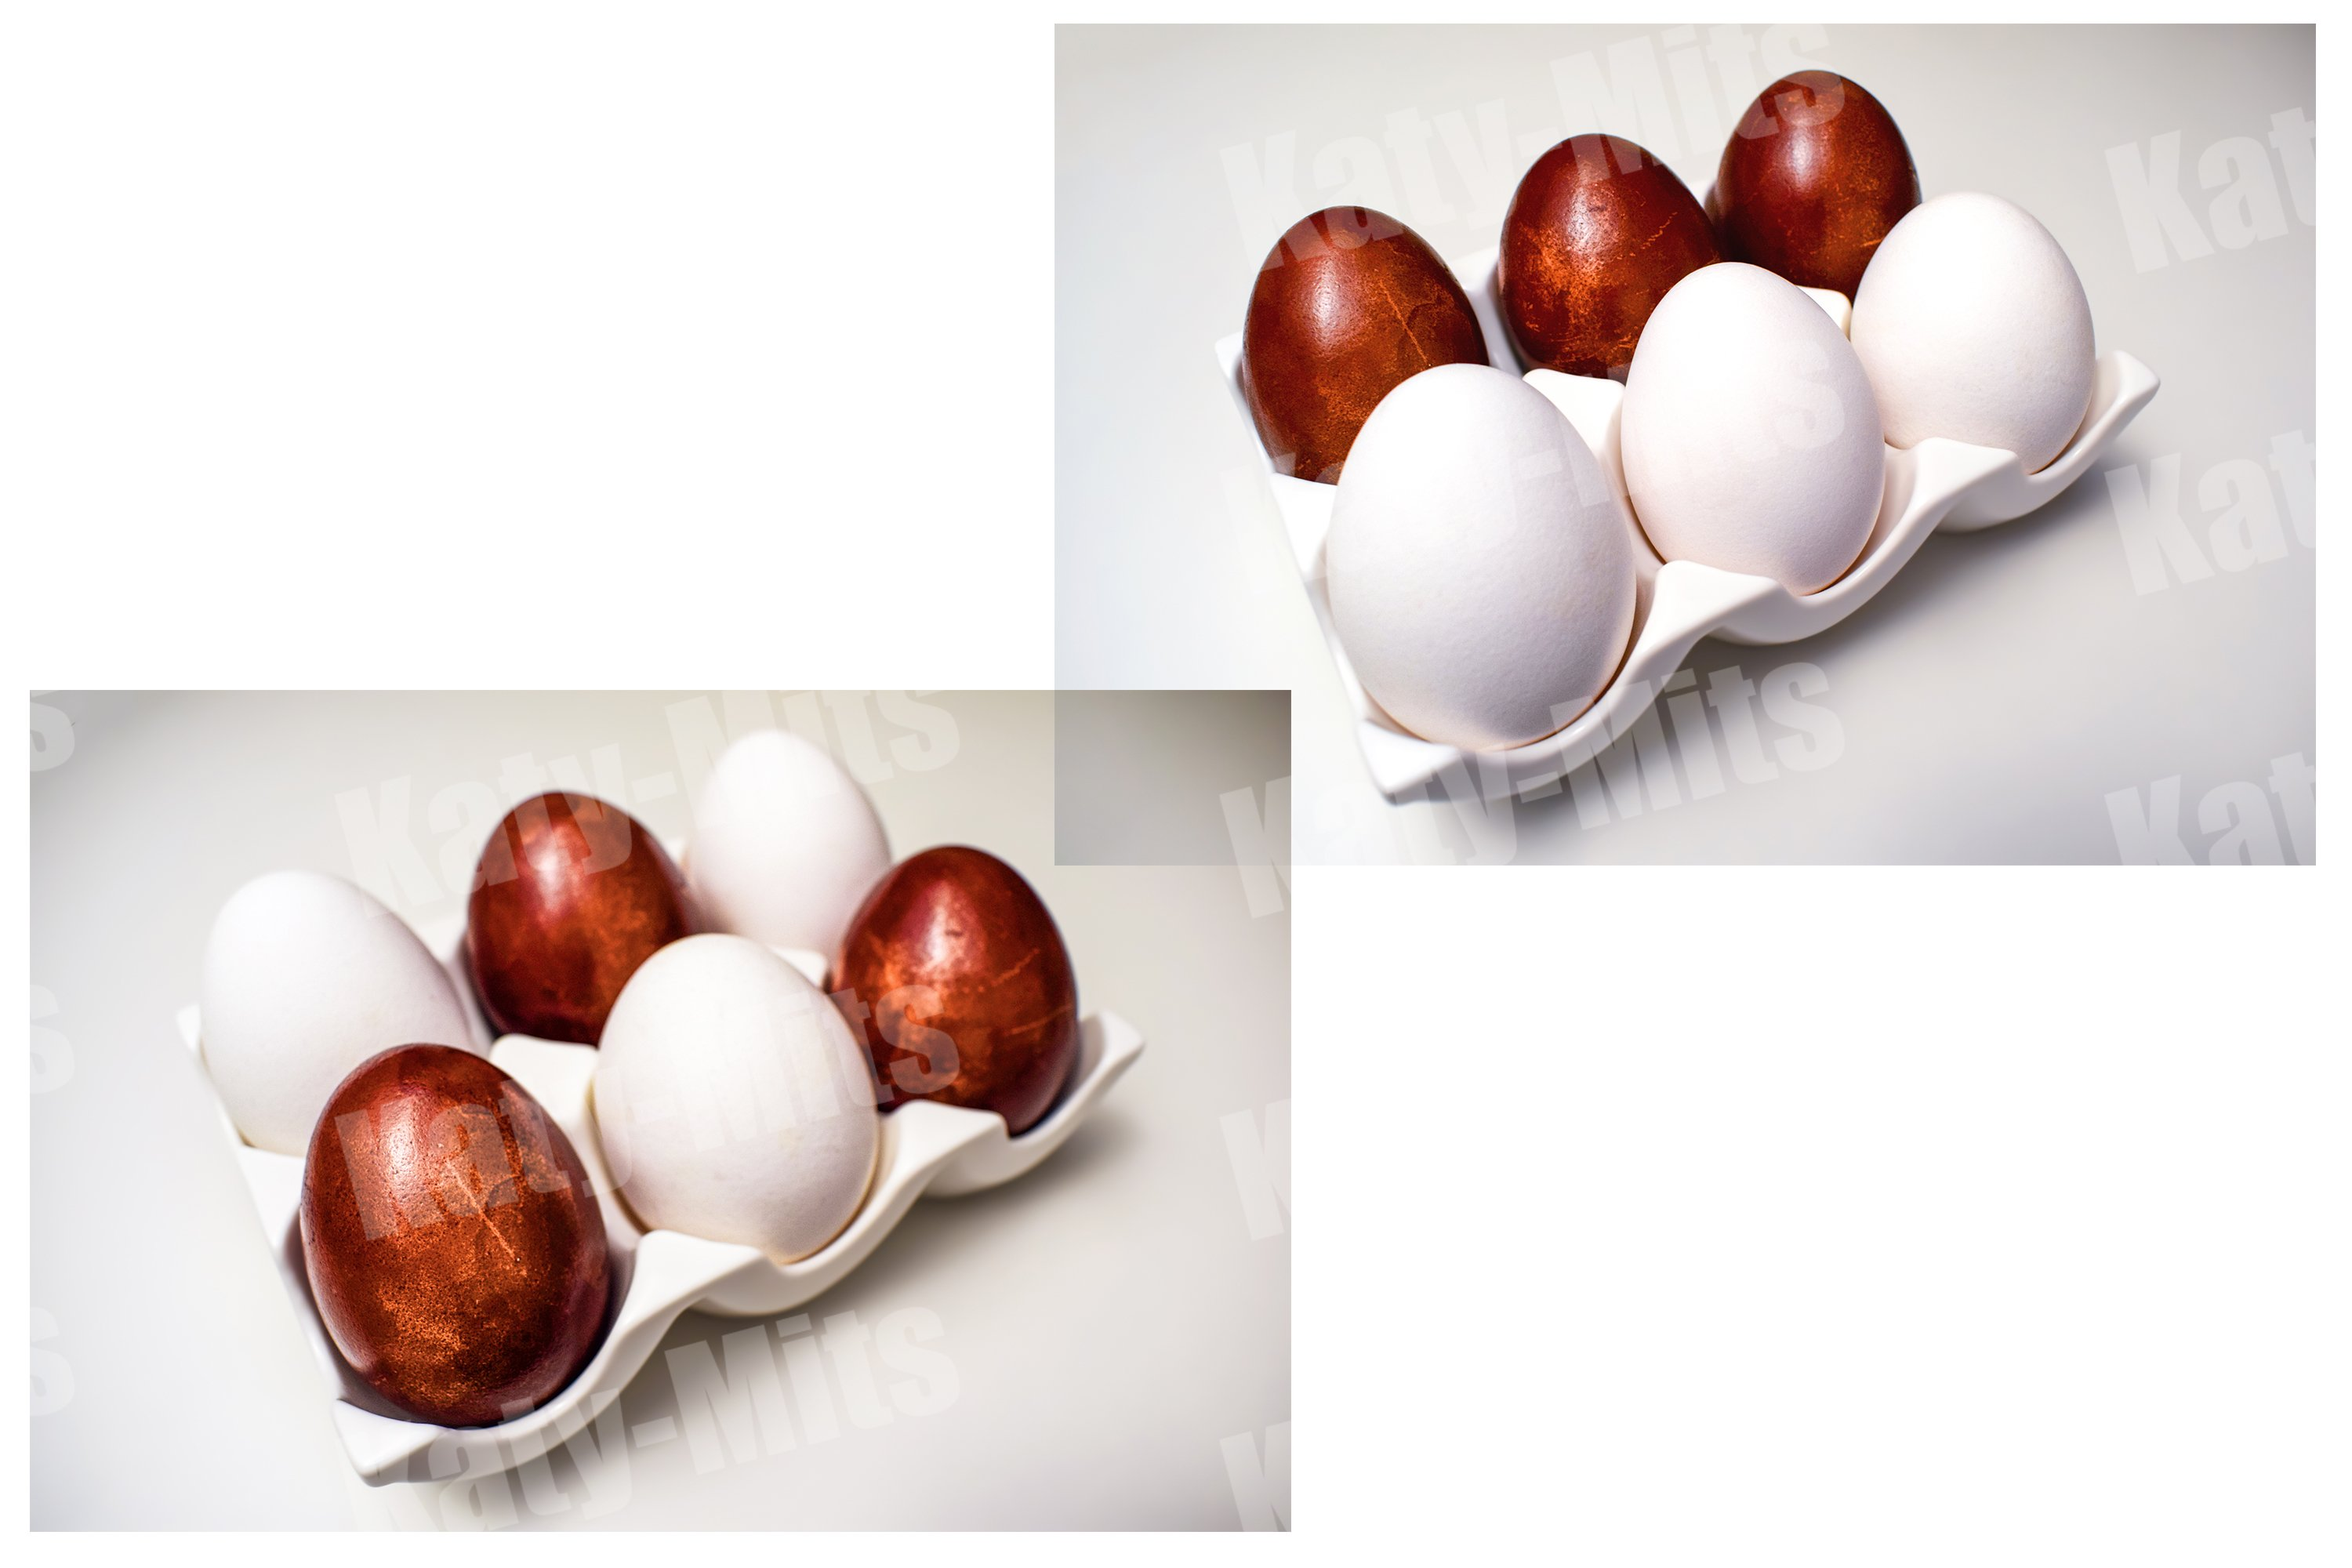 Set of 2 photos. White and colored eggs in a ceramic stand example image 1